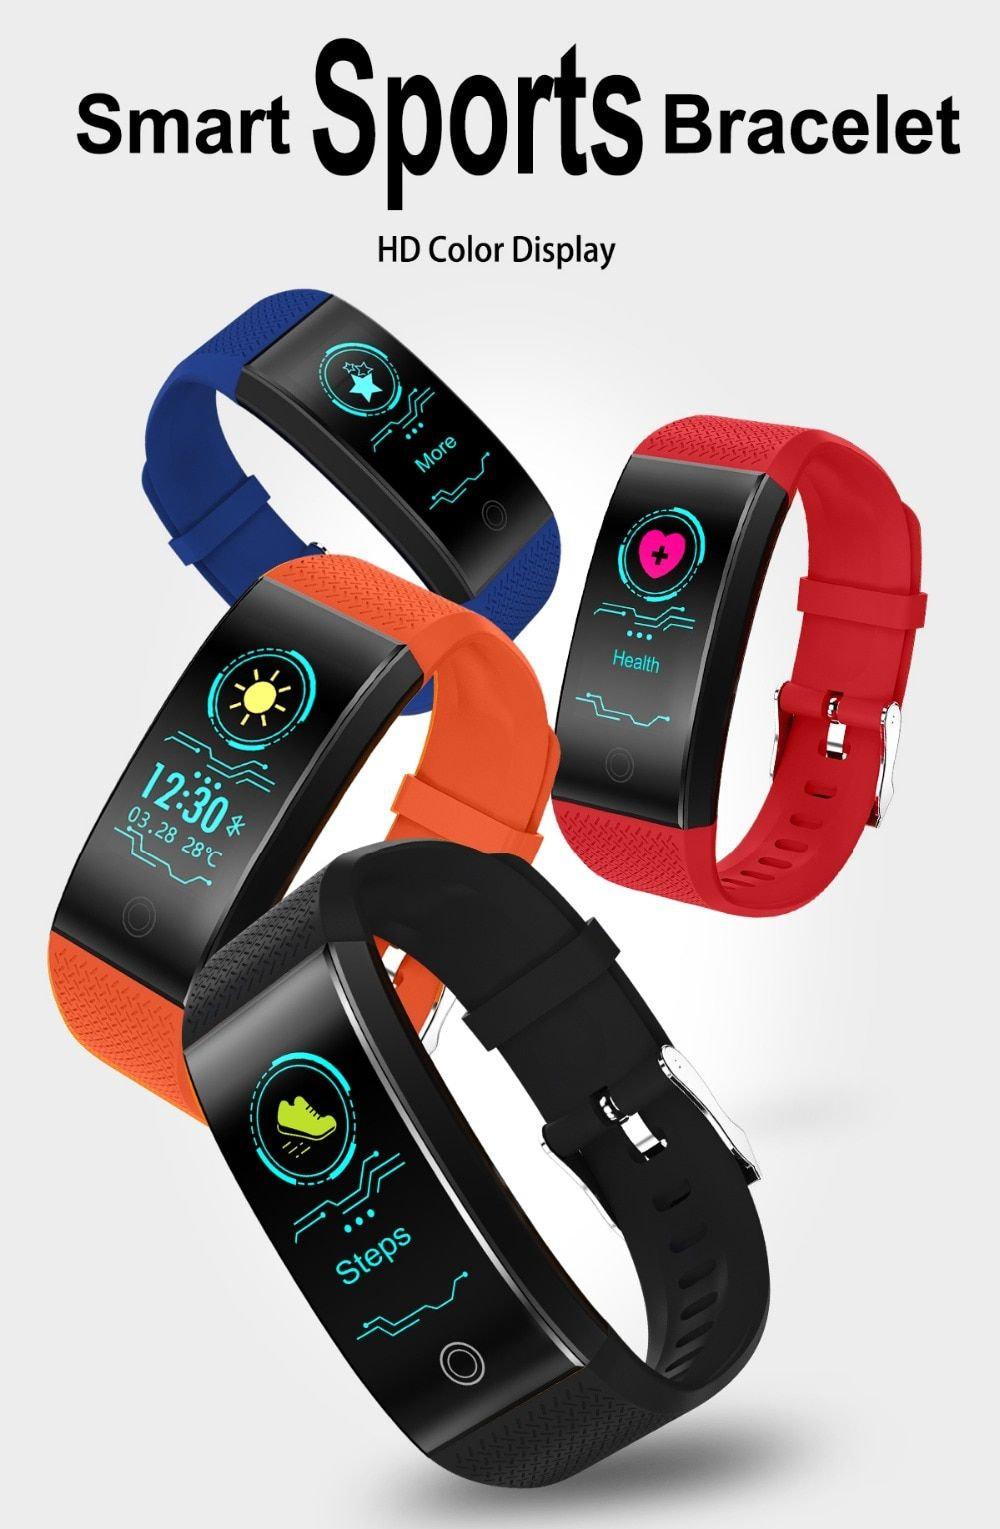 e43e5e0ed99 TLXSA Brand Fitness Bracelet Smart Pedometer Wristband Heart Rate Monitor  Waterproof IP68 Sport Intelligent Bracelet Android&IOS